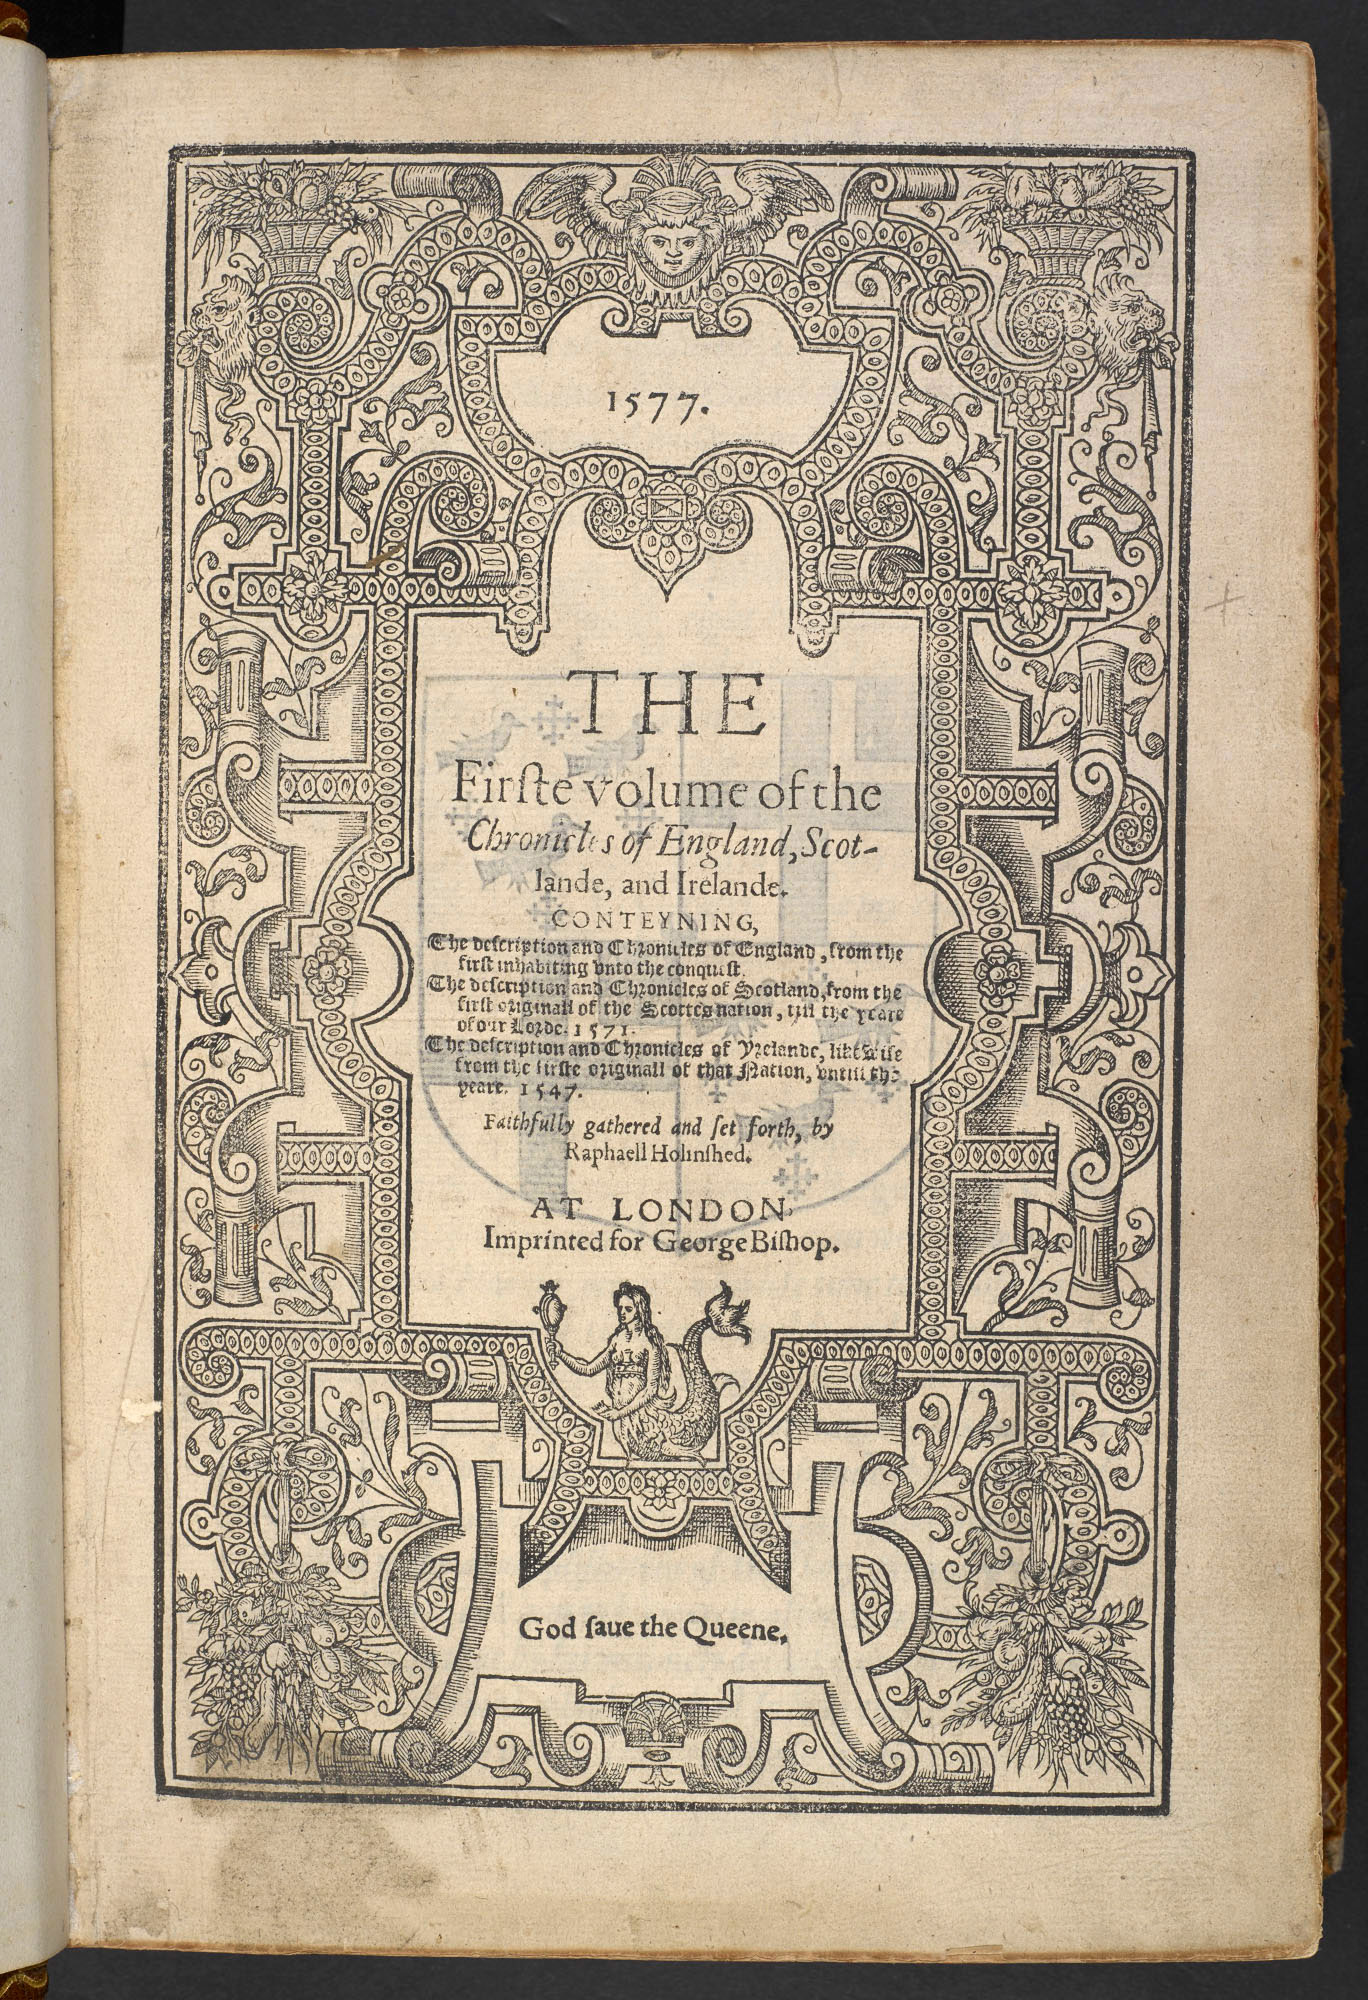 Holinshed's Chronicles, 1577